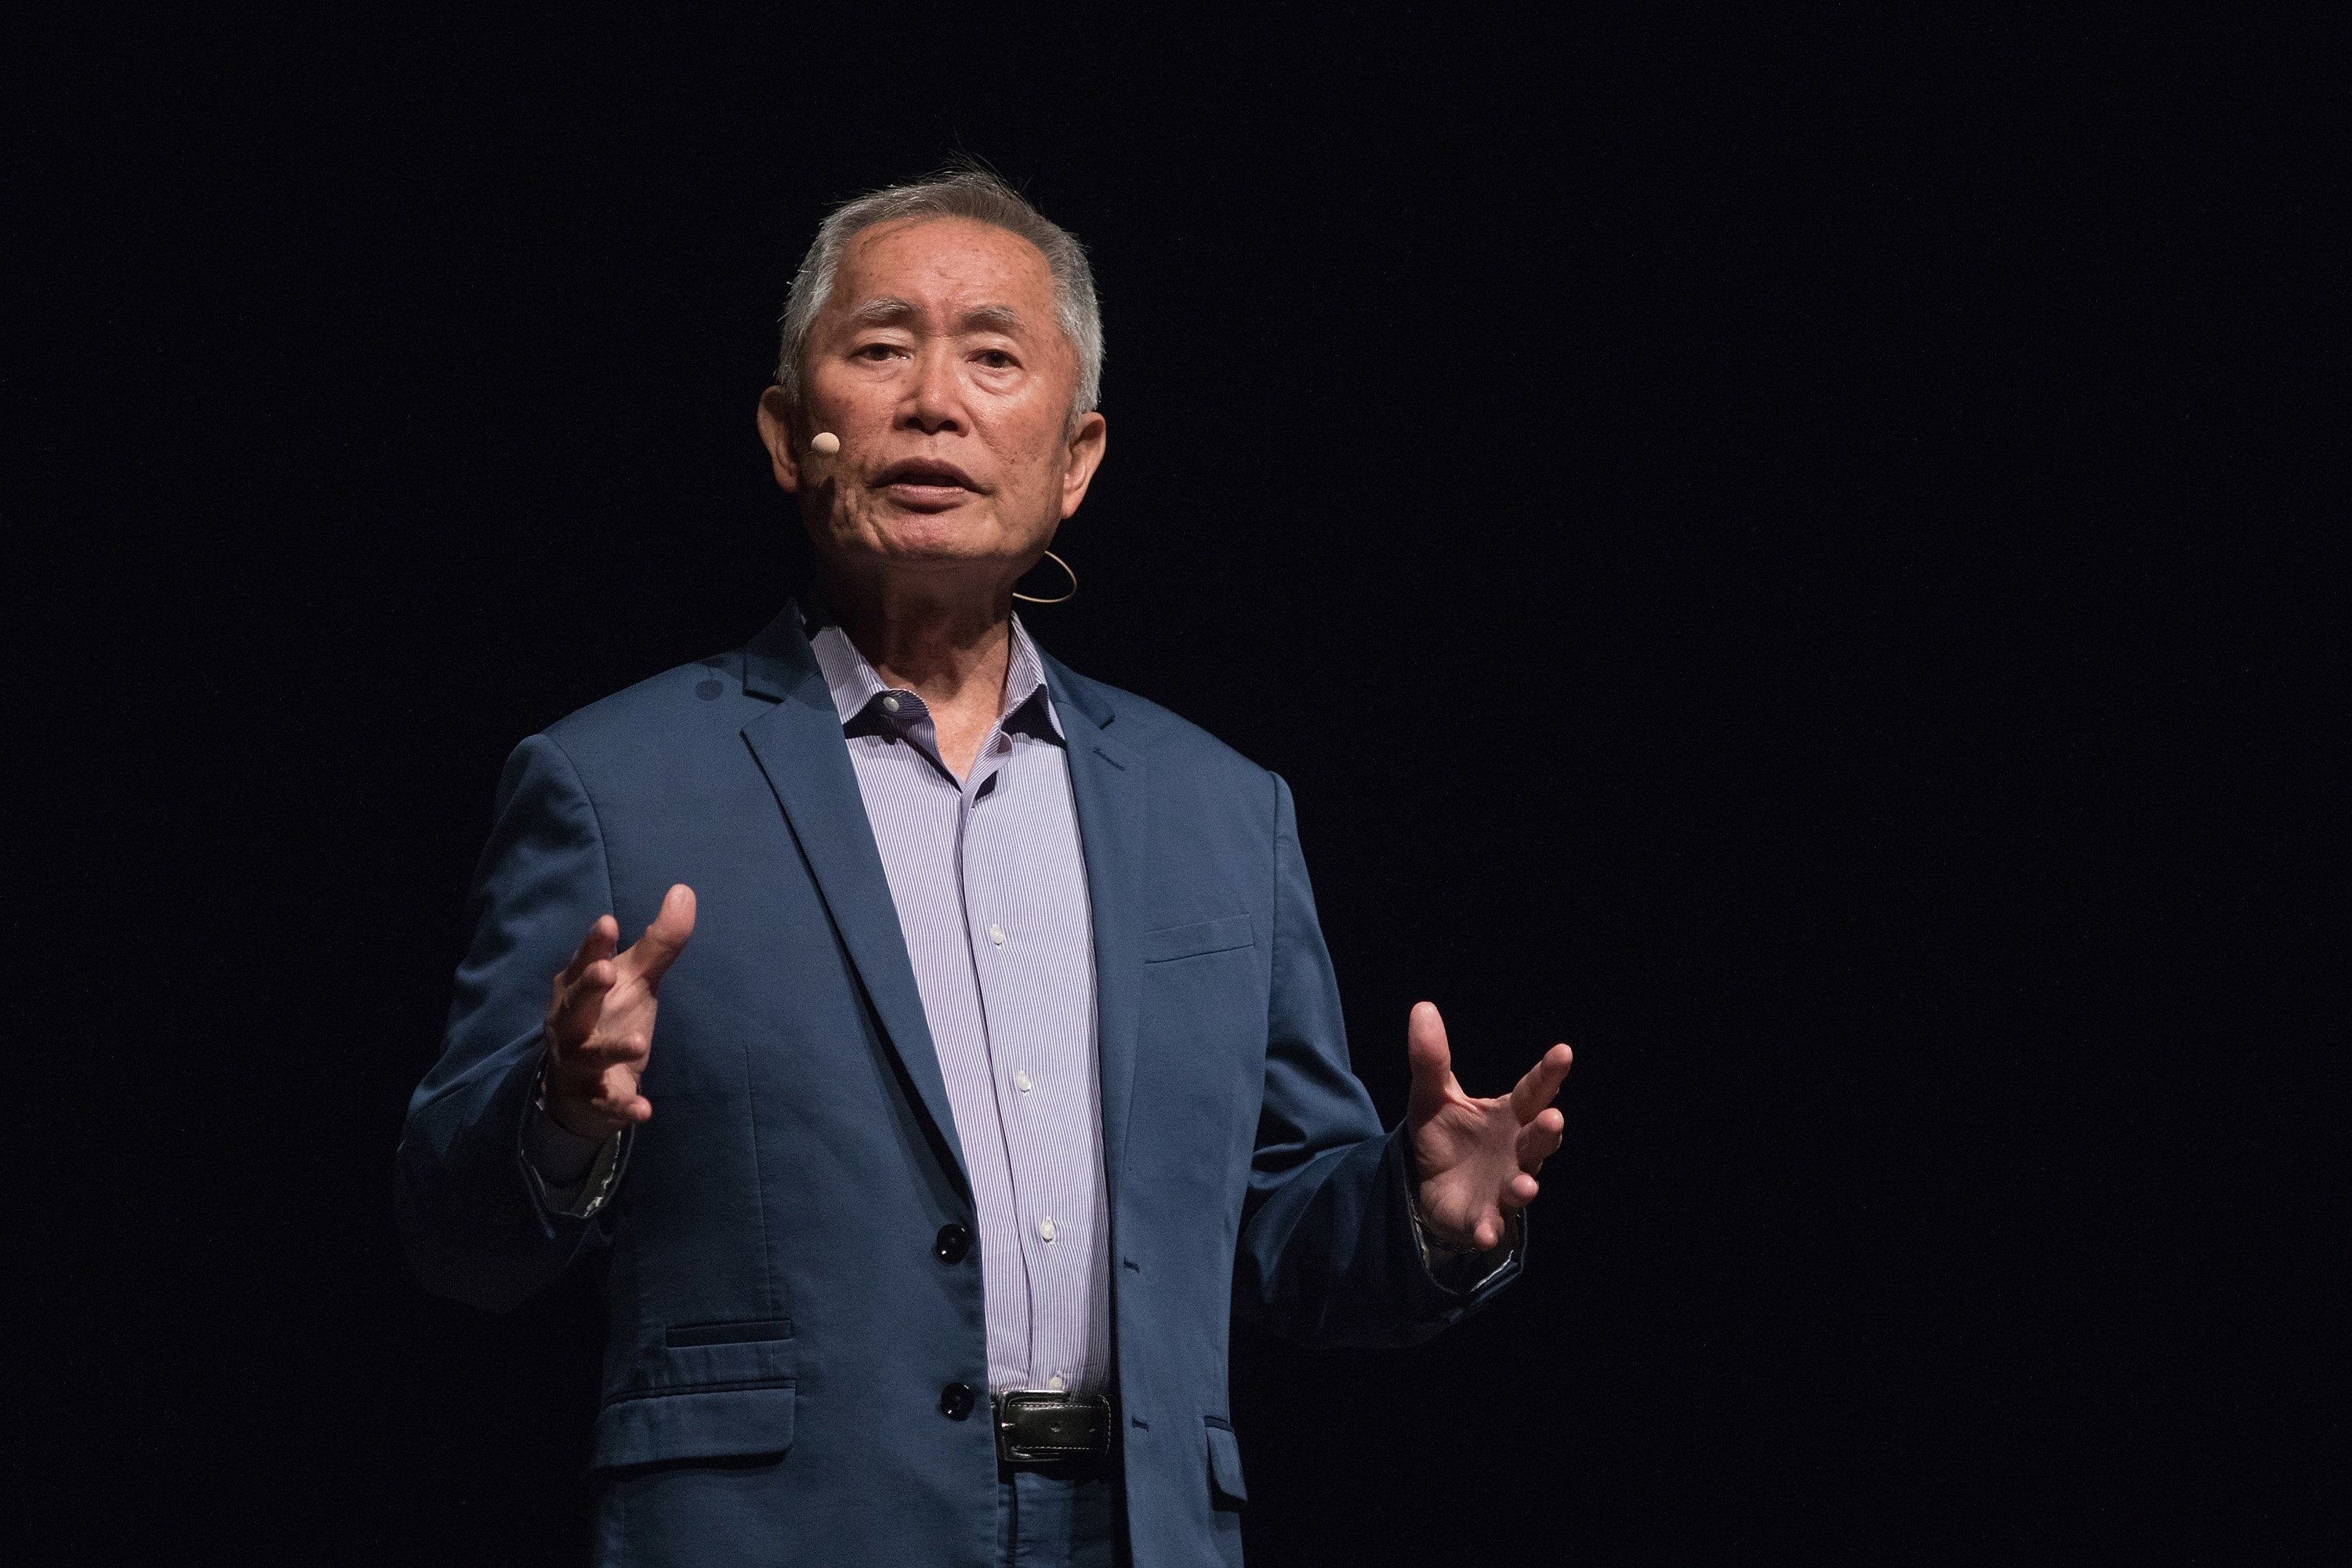 AUSTIN, TX - MAY 04:  Activist/actor George Takei speaks onstage during 'An Evening with George Takei' at the Long Center on May 4, 2018 in Austin, Texas.  (Photo by Rick Kern/WireImage)